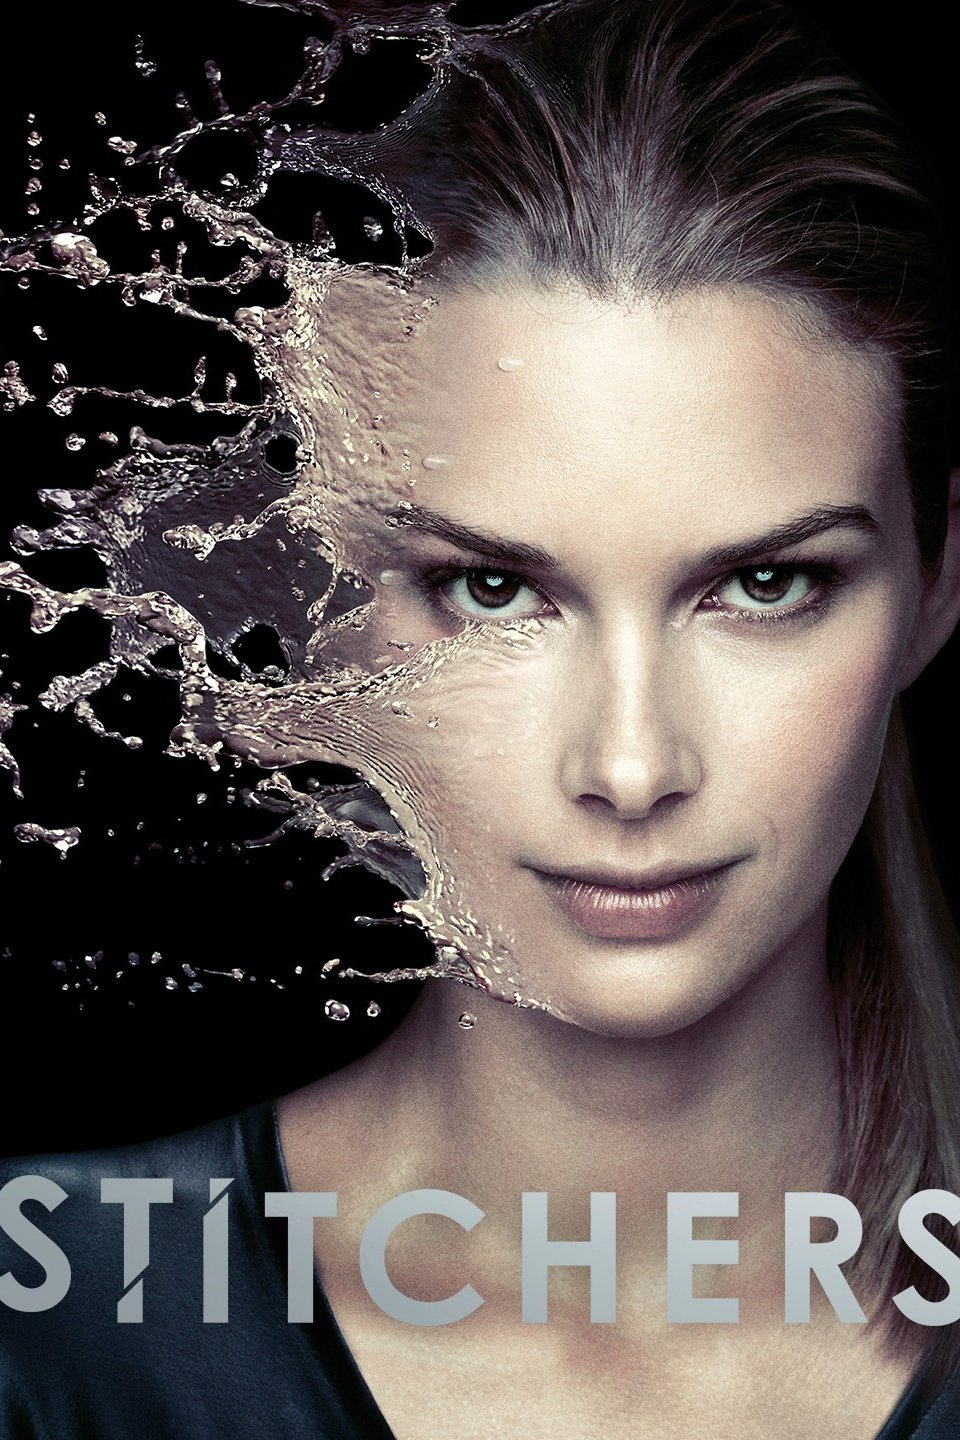 Stitchers Season 3 Episode 3 Download HDTV 480p & 720p